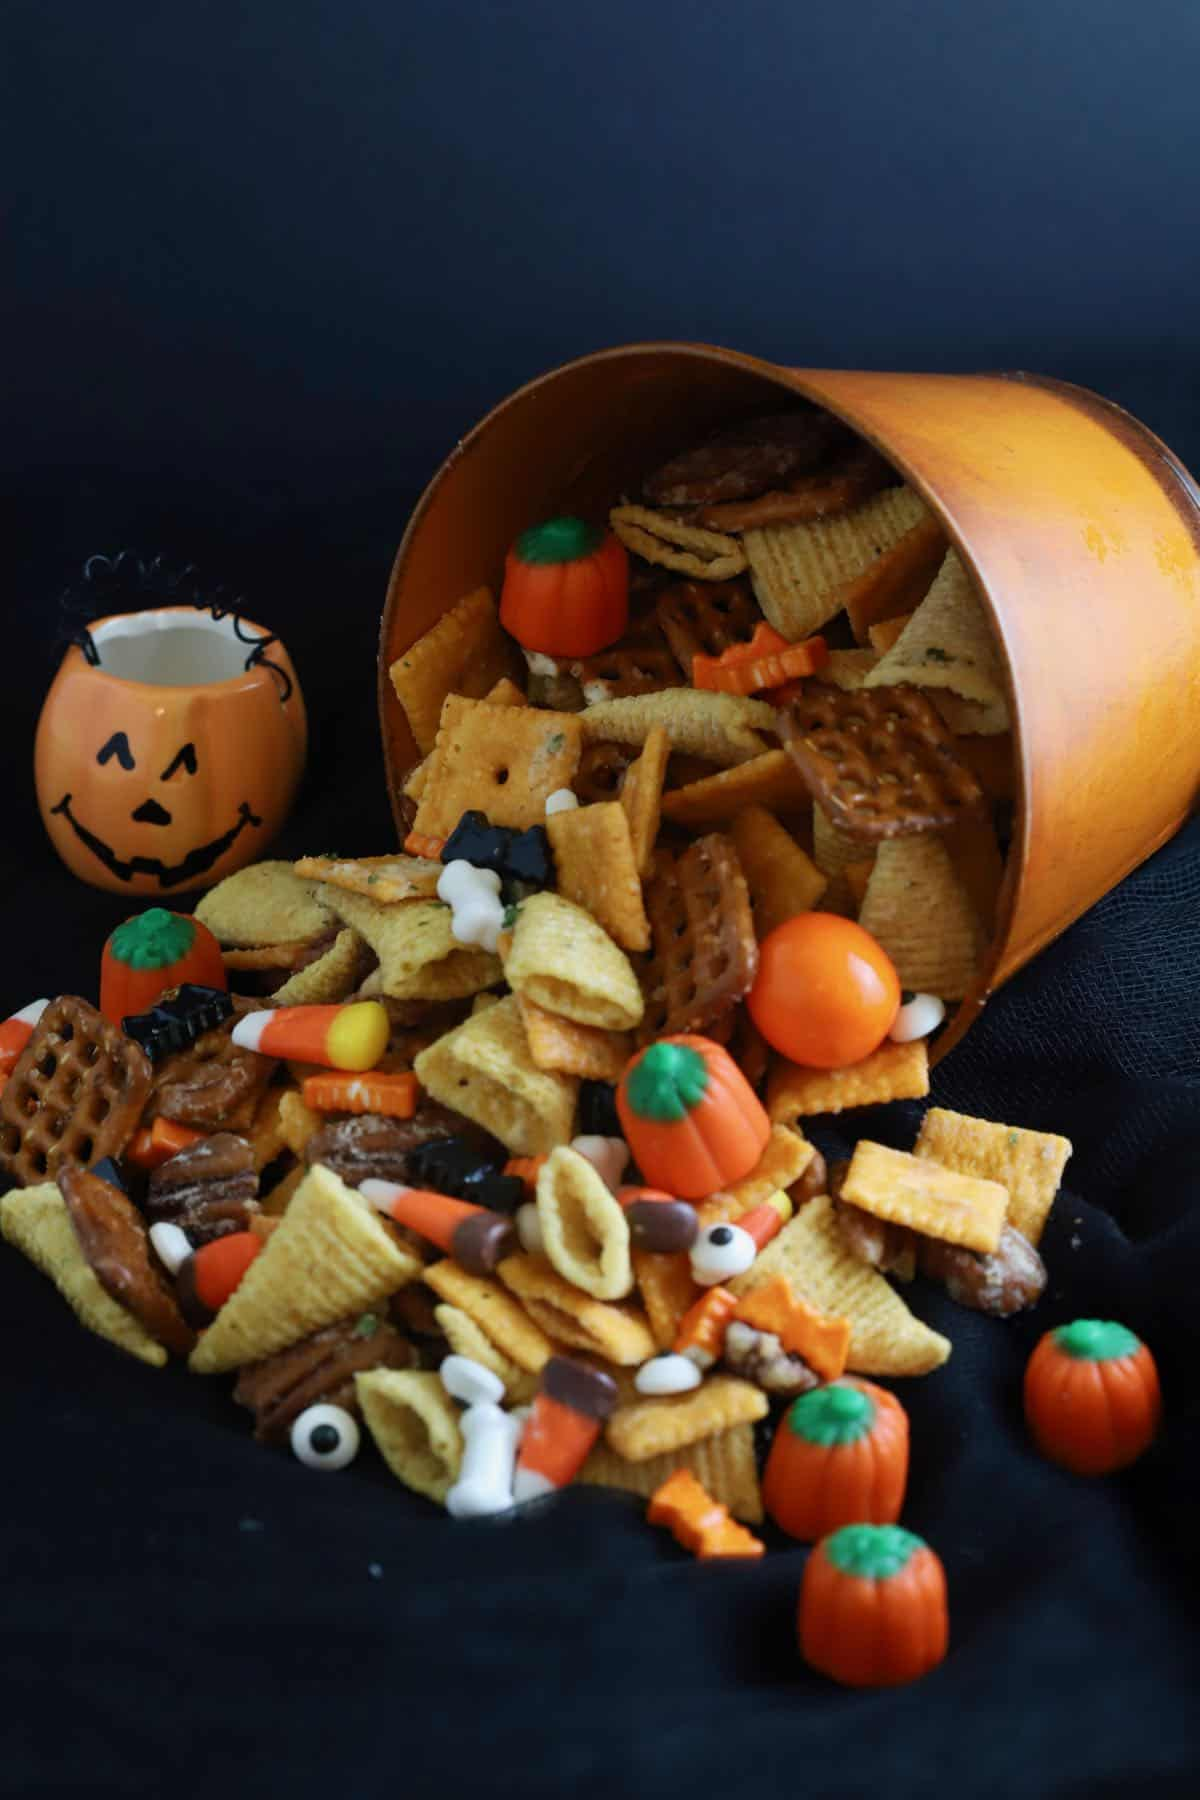 A orange Halloween pail with snack mix falling out of it.